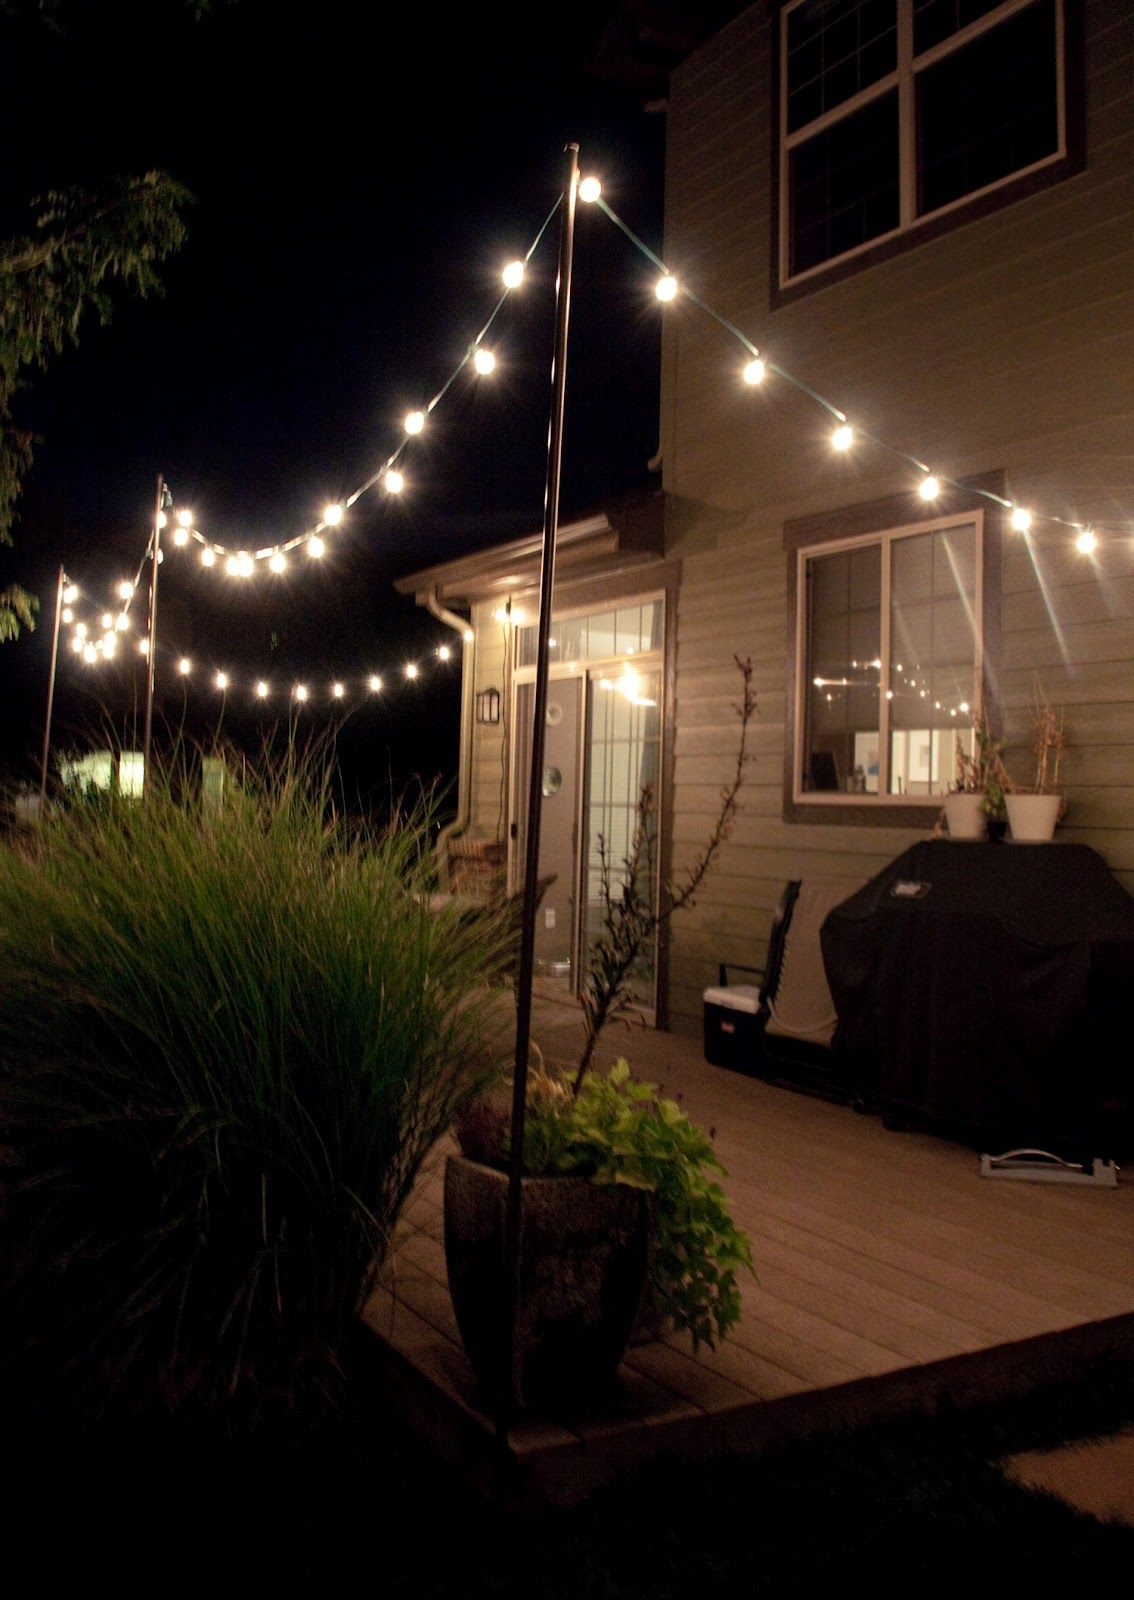 Decoration Fete Exterieur Jardin Bright July Diy Outdoor String Lights Garden Ideas In 2018